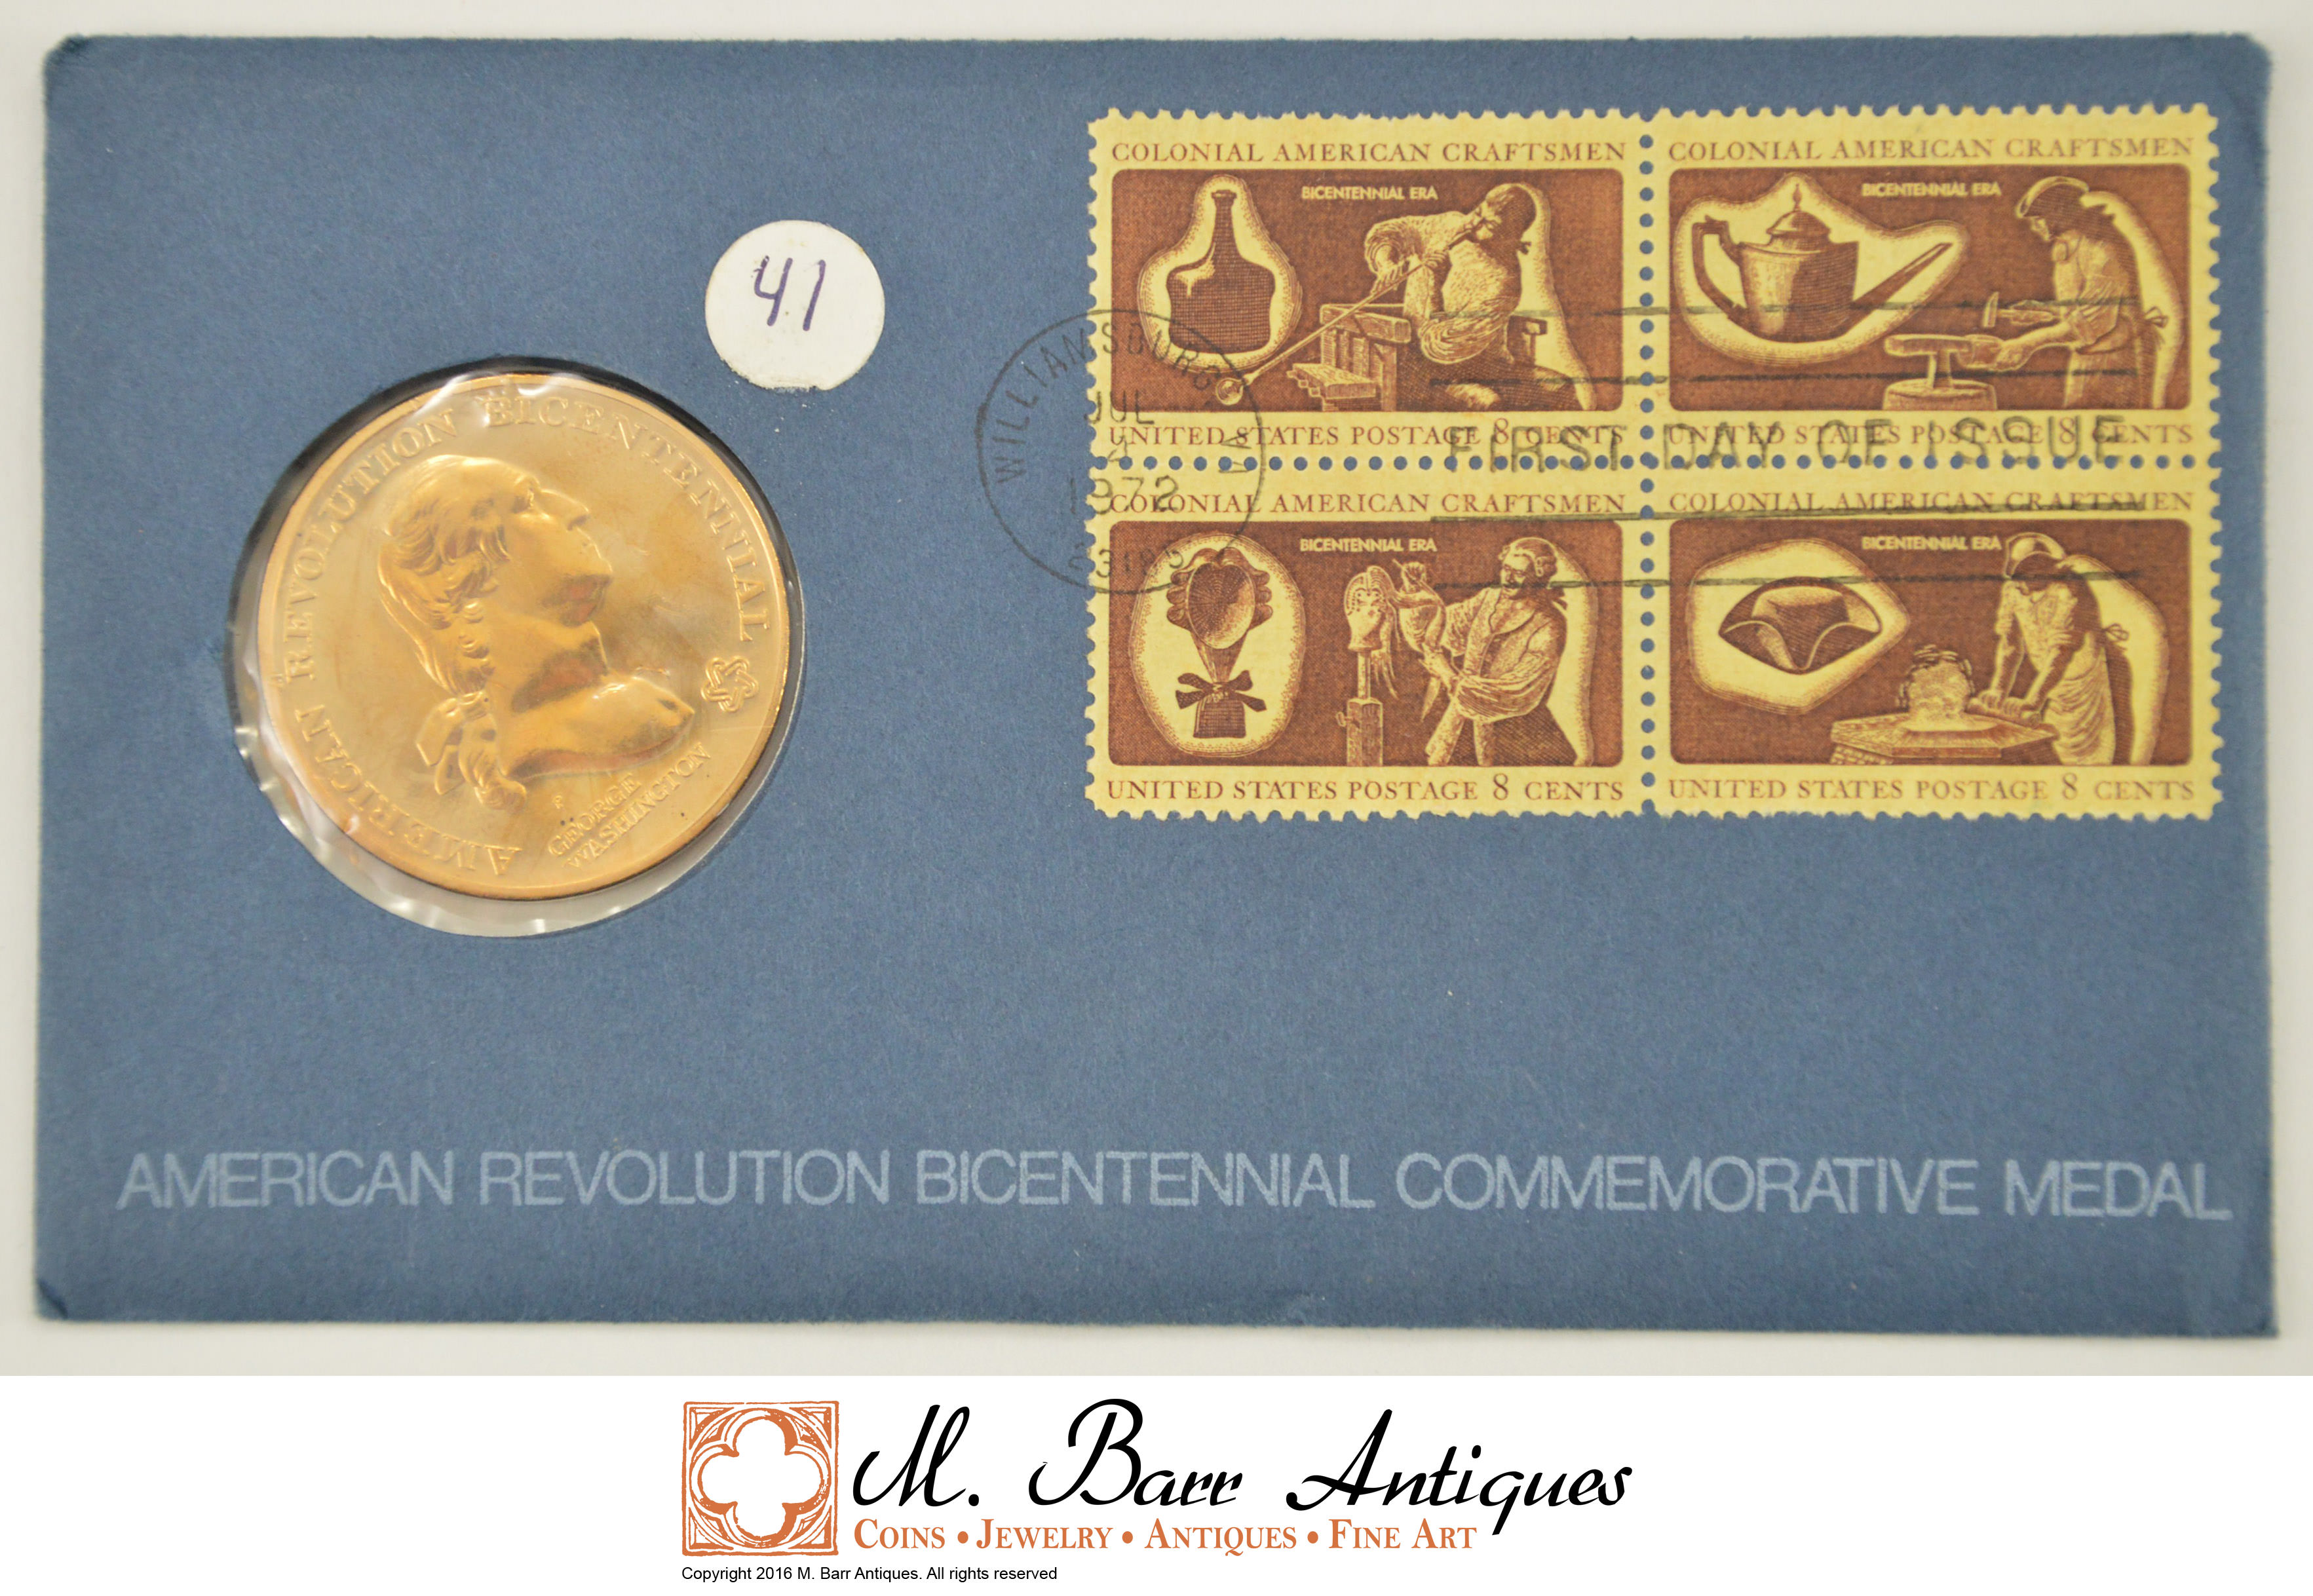 Image 1 Of 2 1776 1976 BiCentennial American Revolution US Mint Coin Stamp Cover